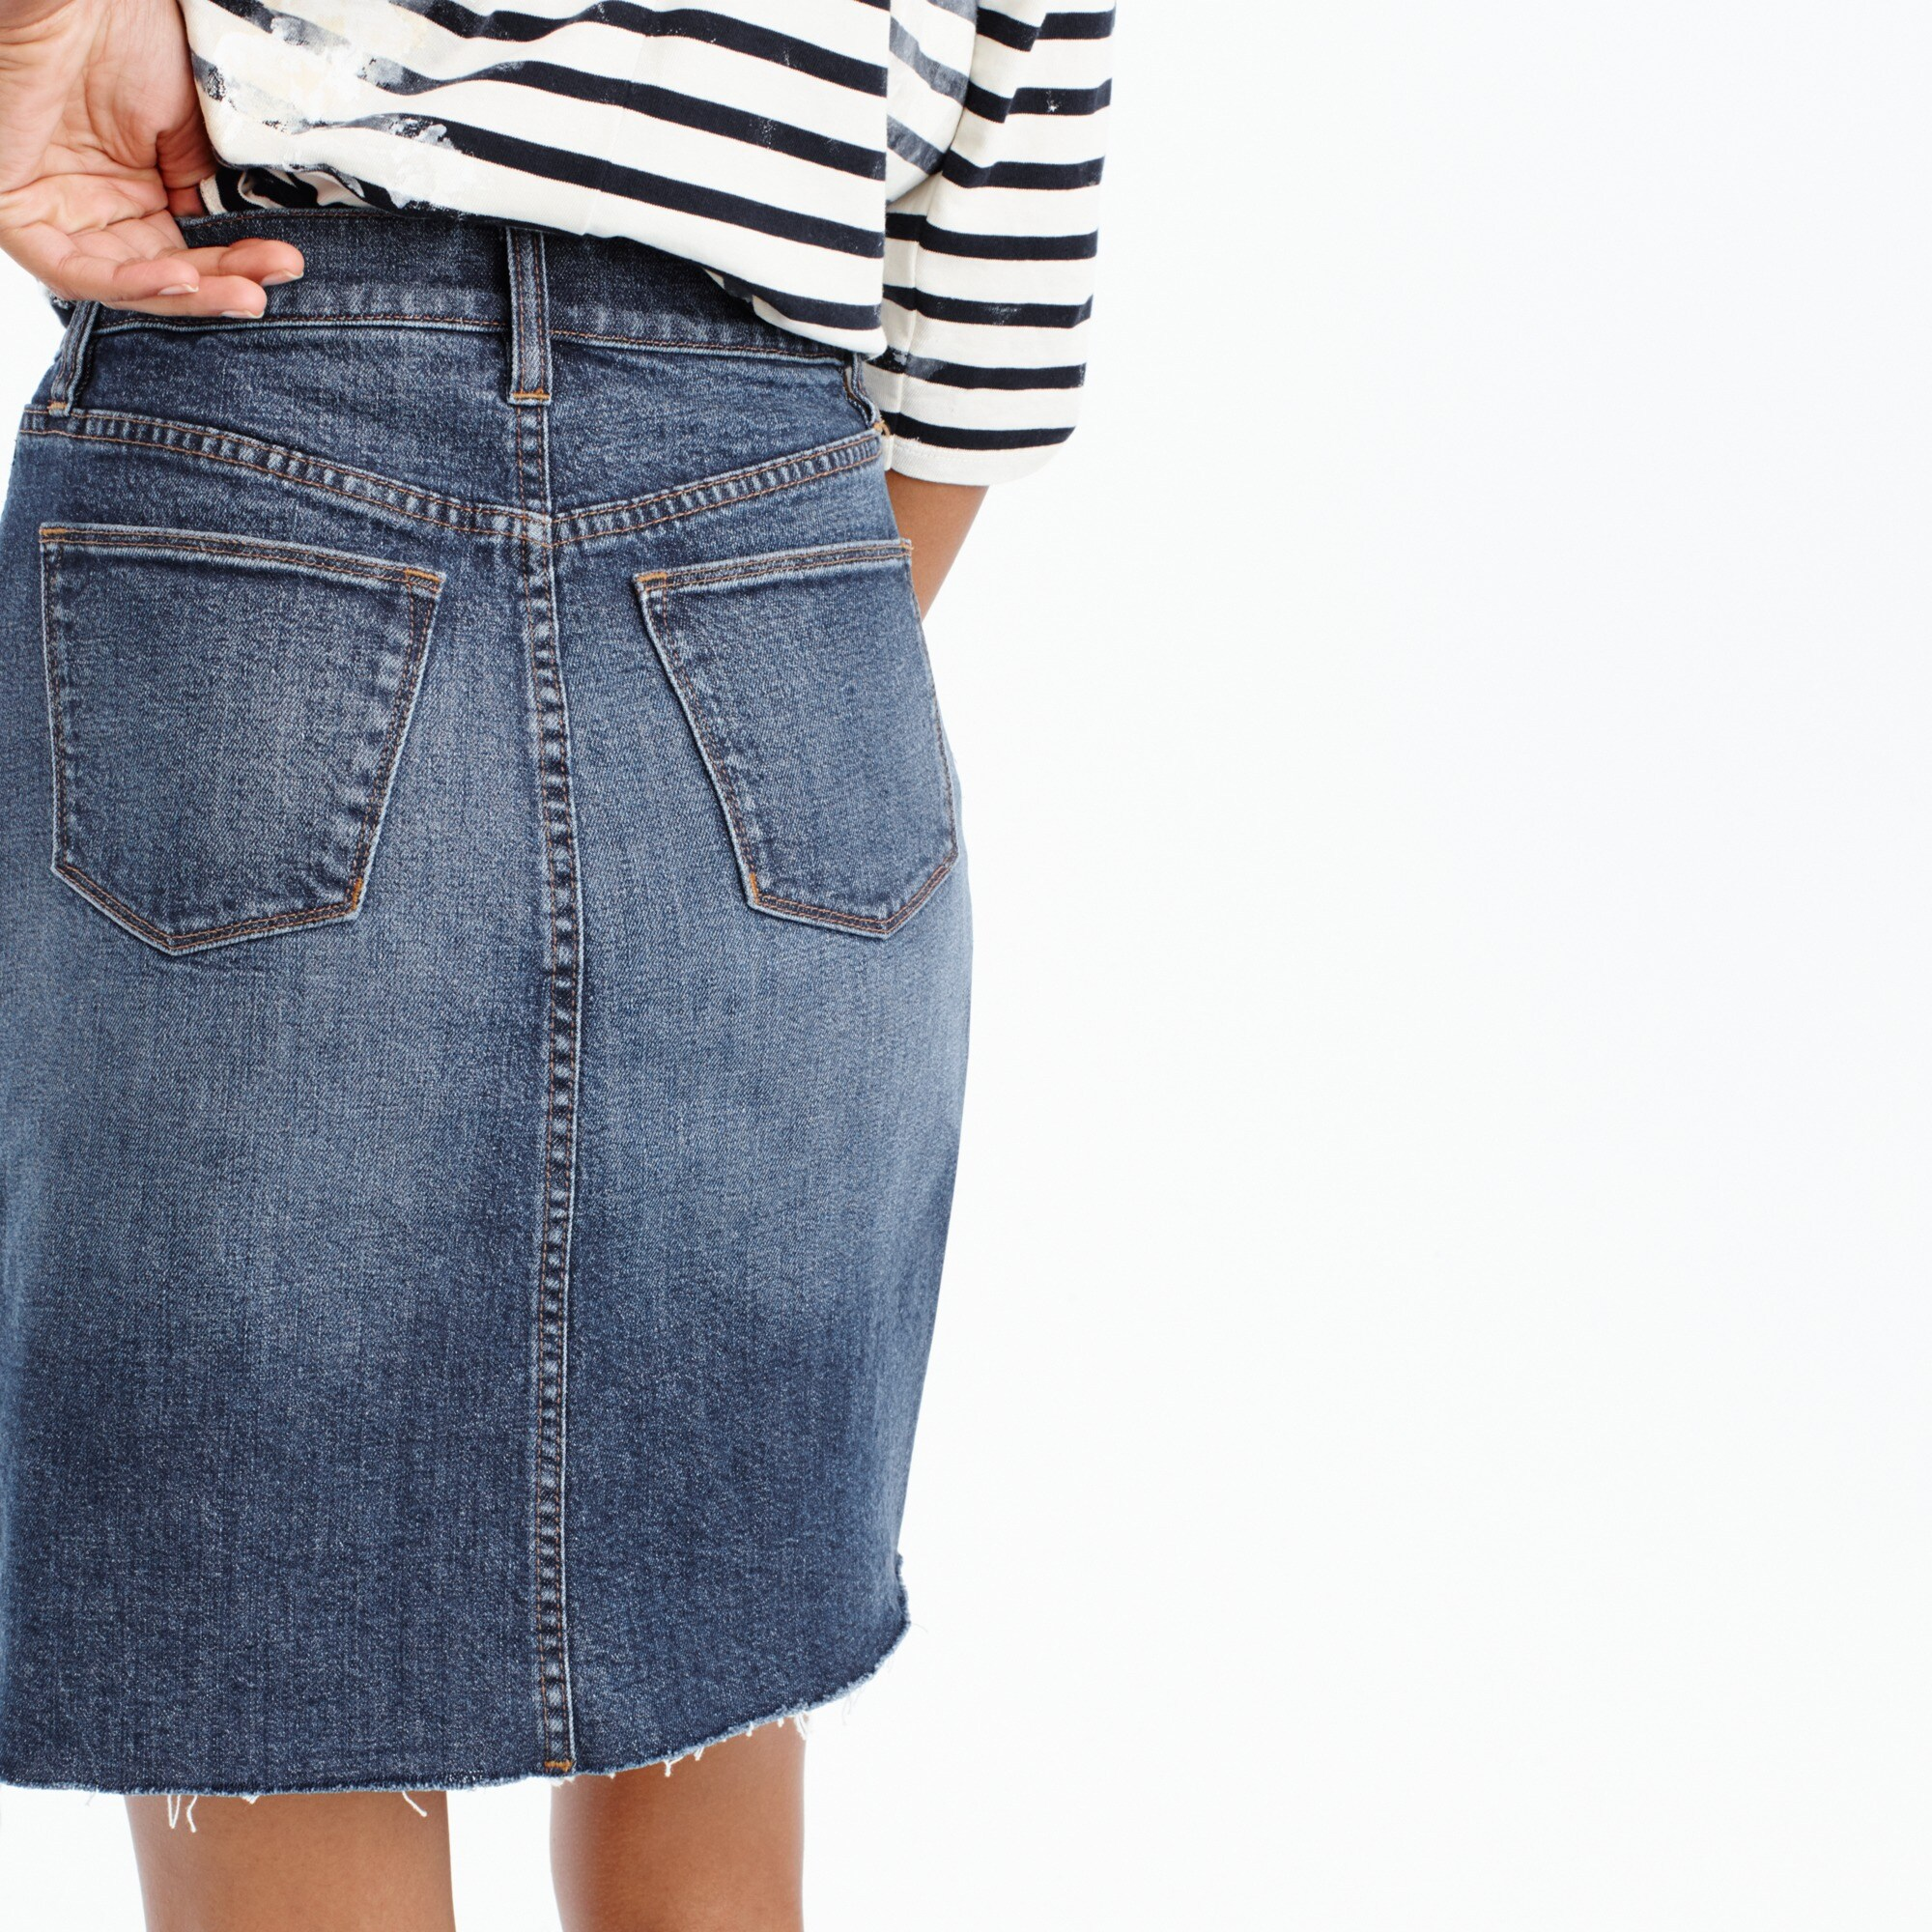 Petite denim skirt with raw hem